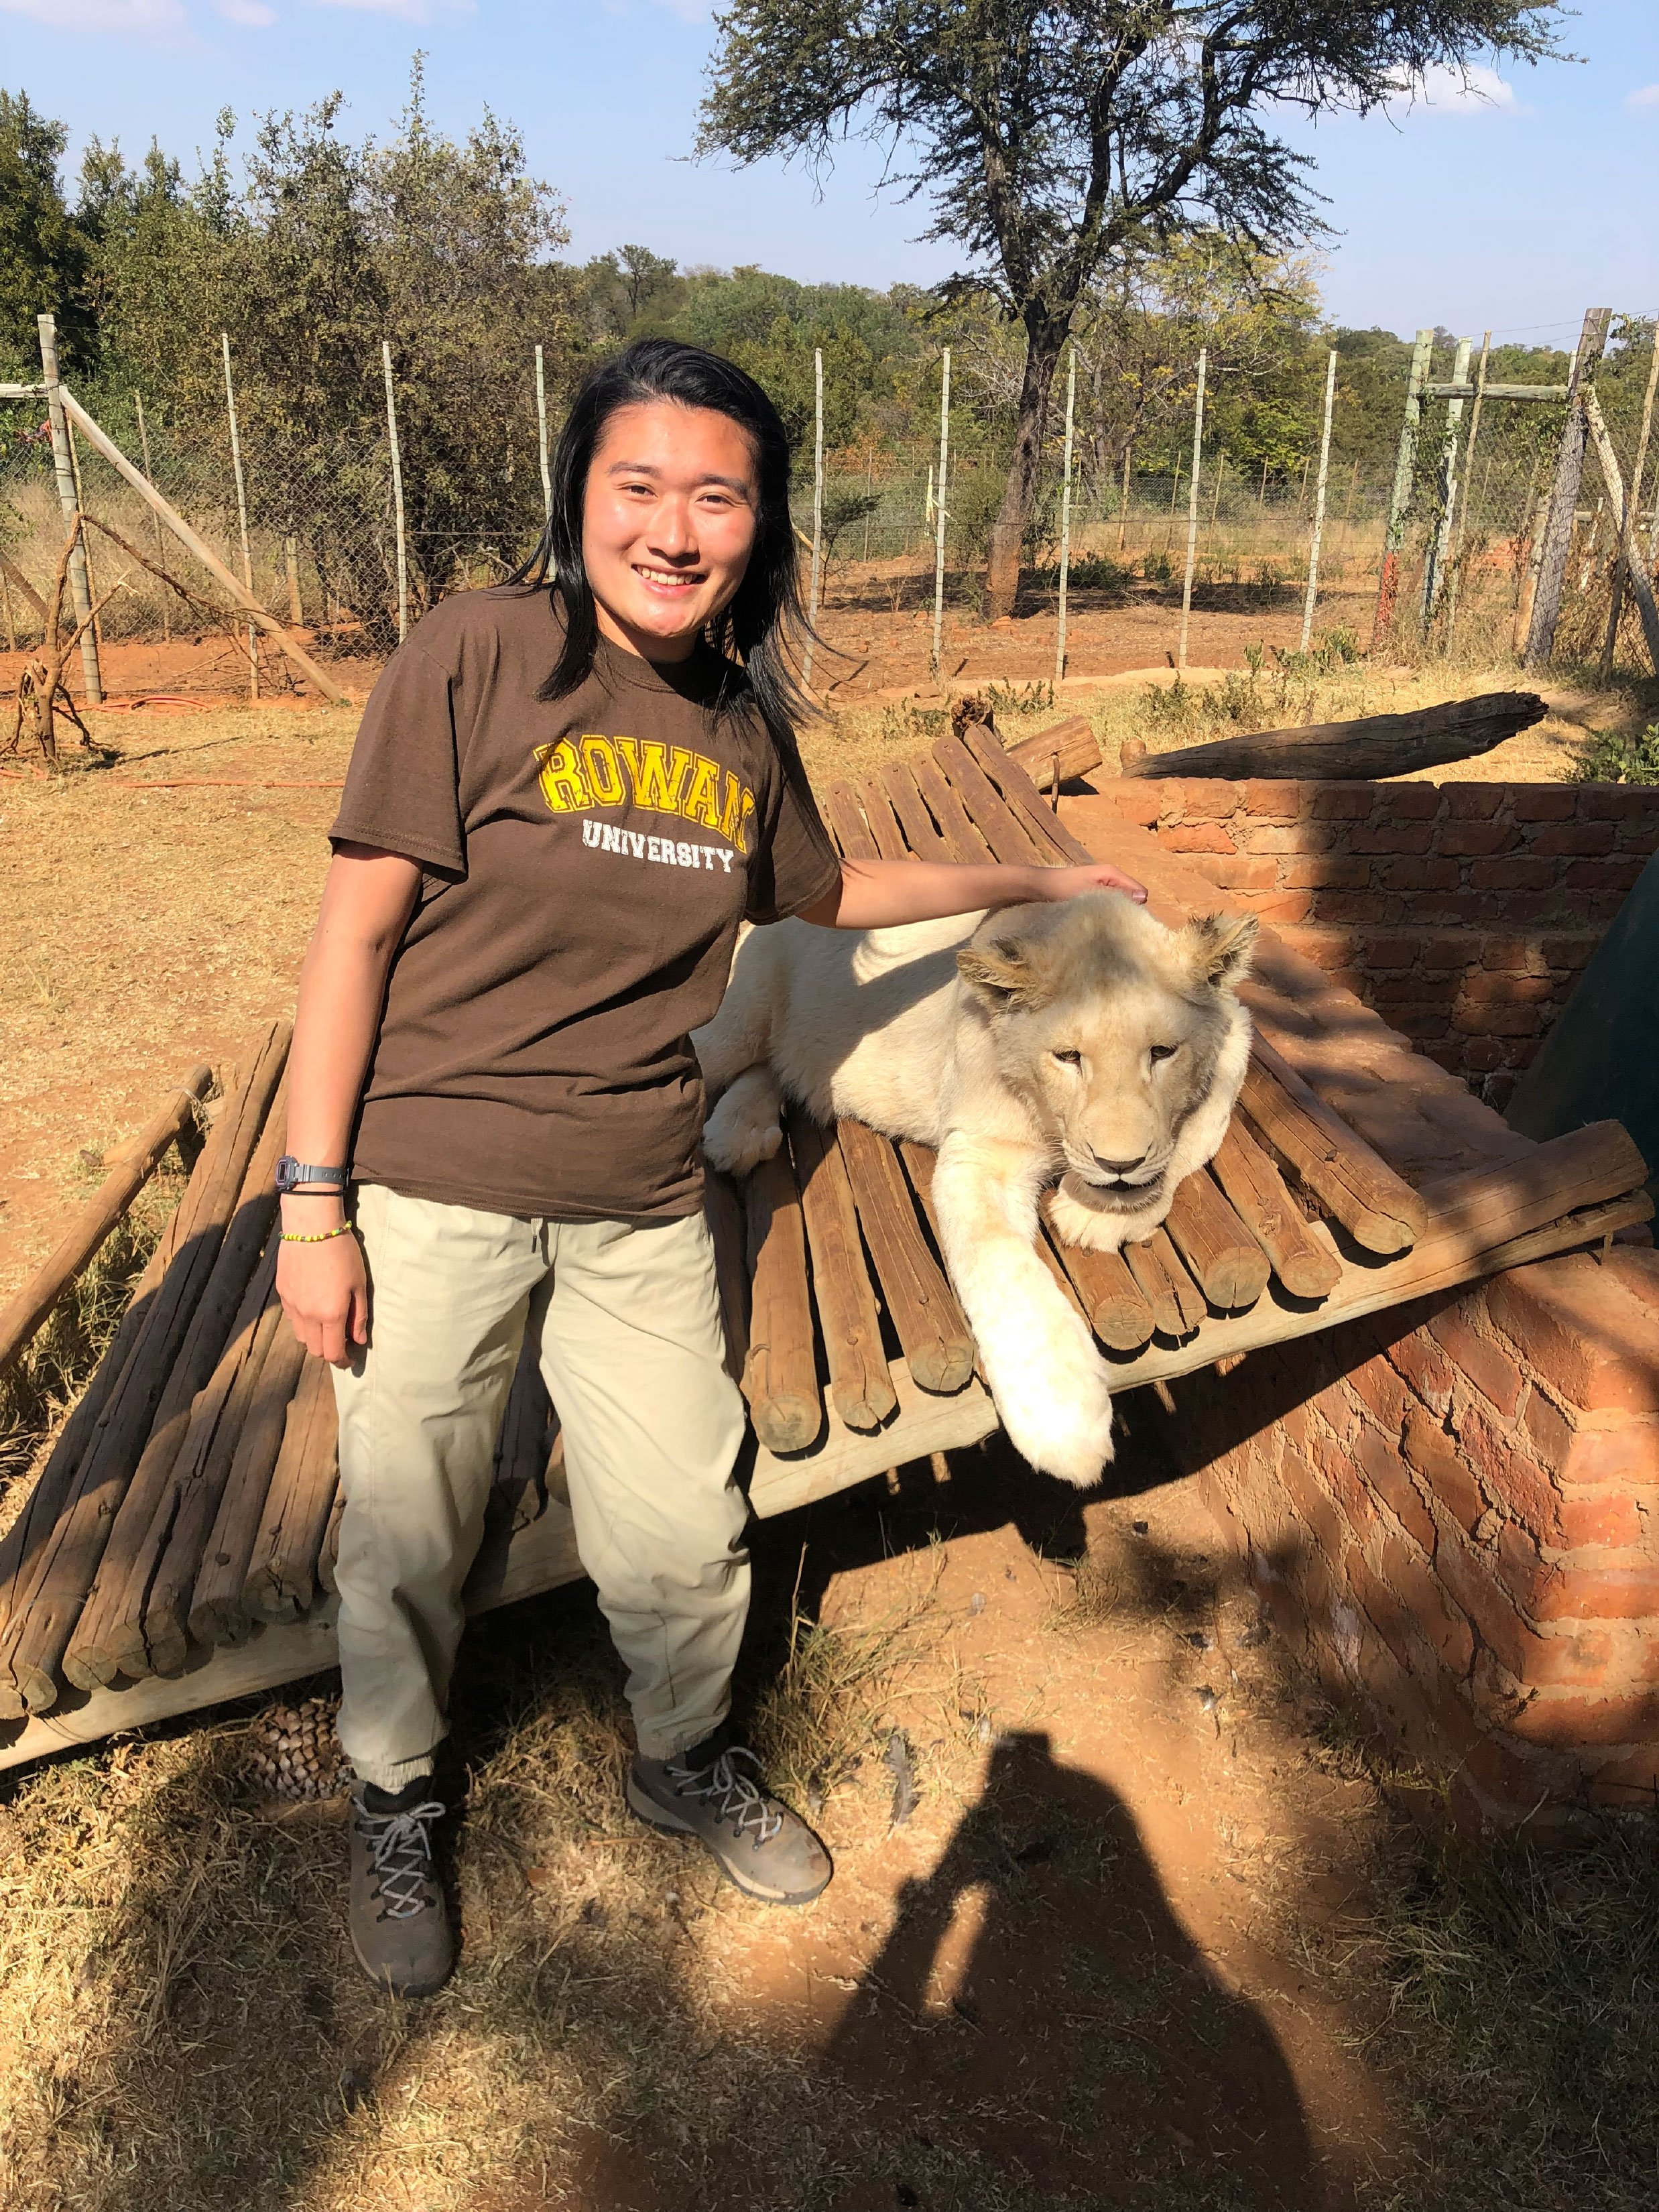 Biological sciences major Fiona Yeung poses with a lion in South Africa